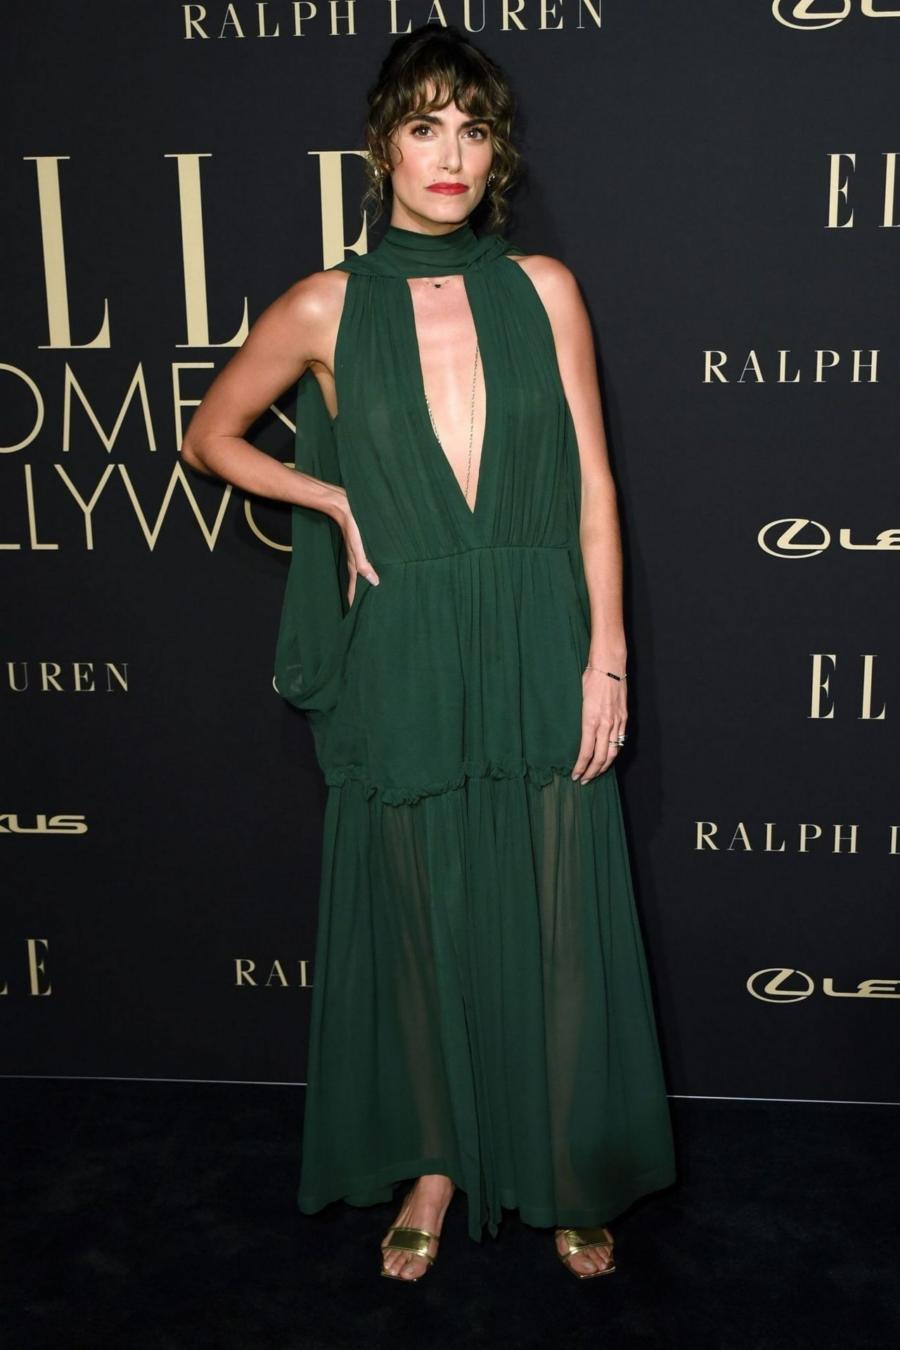 Nikki Reed at ELLE's 2019 Women In Hollywood Event